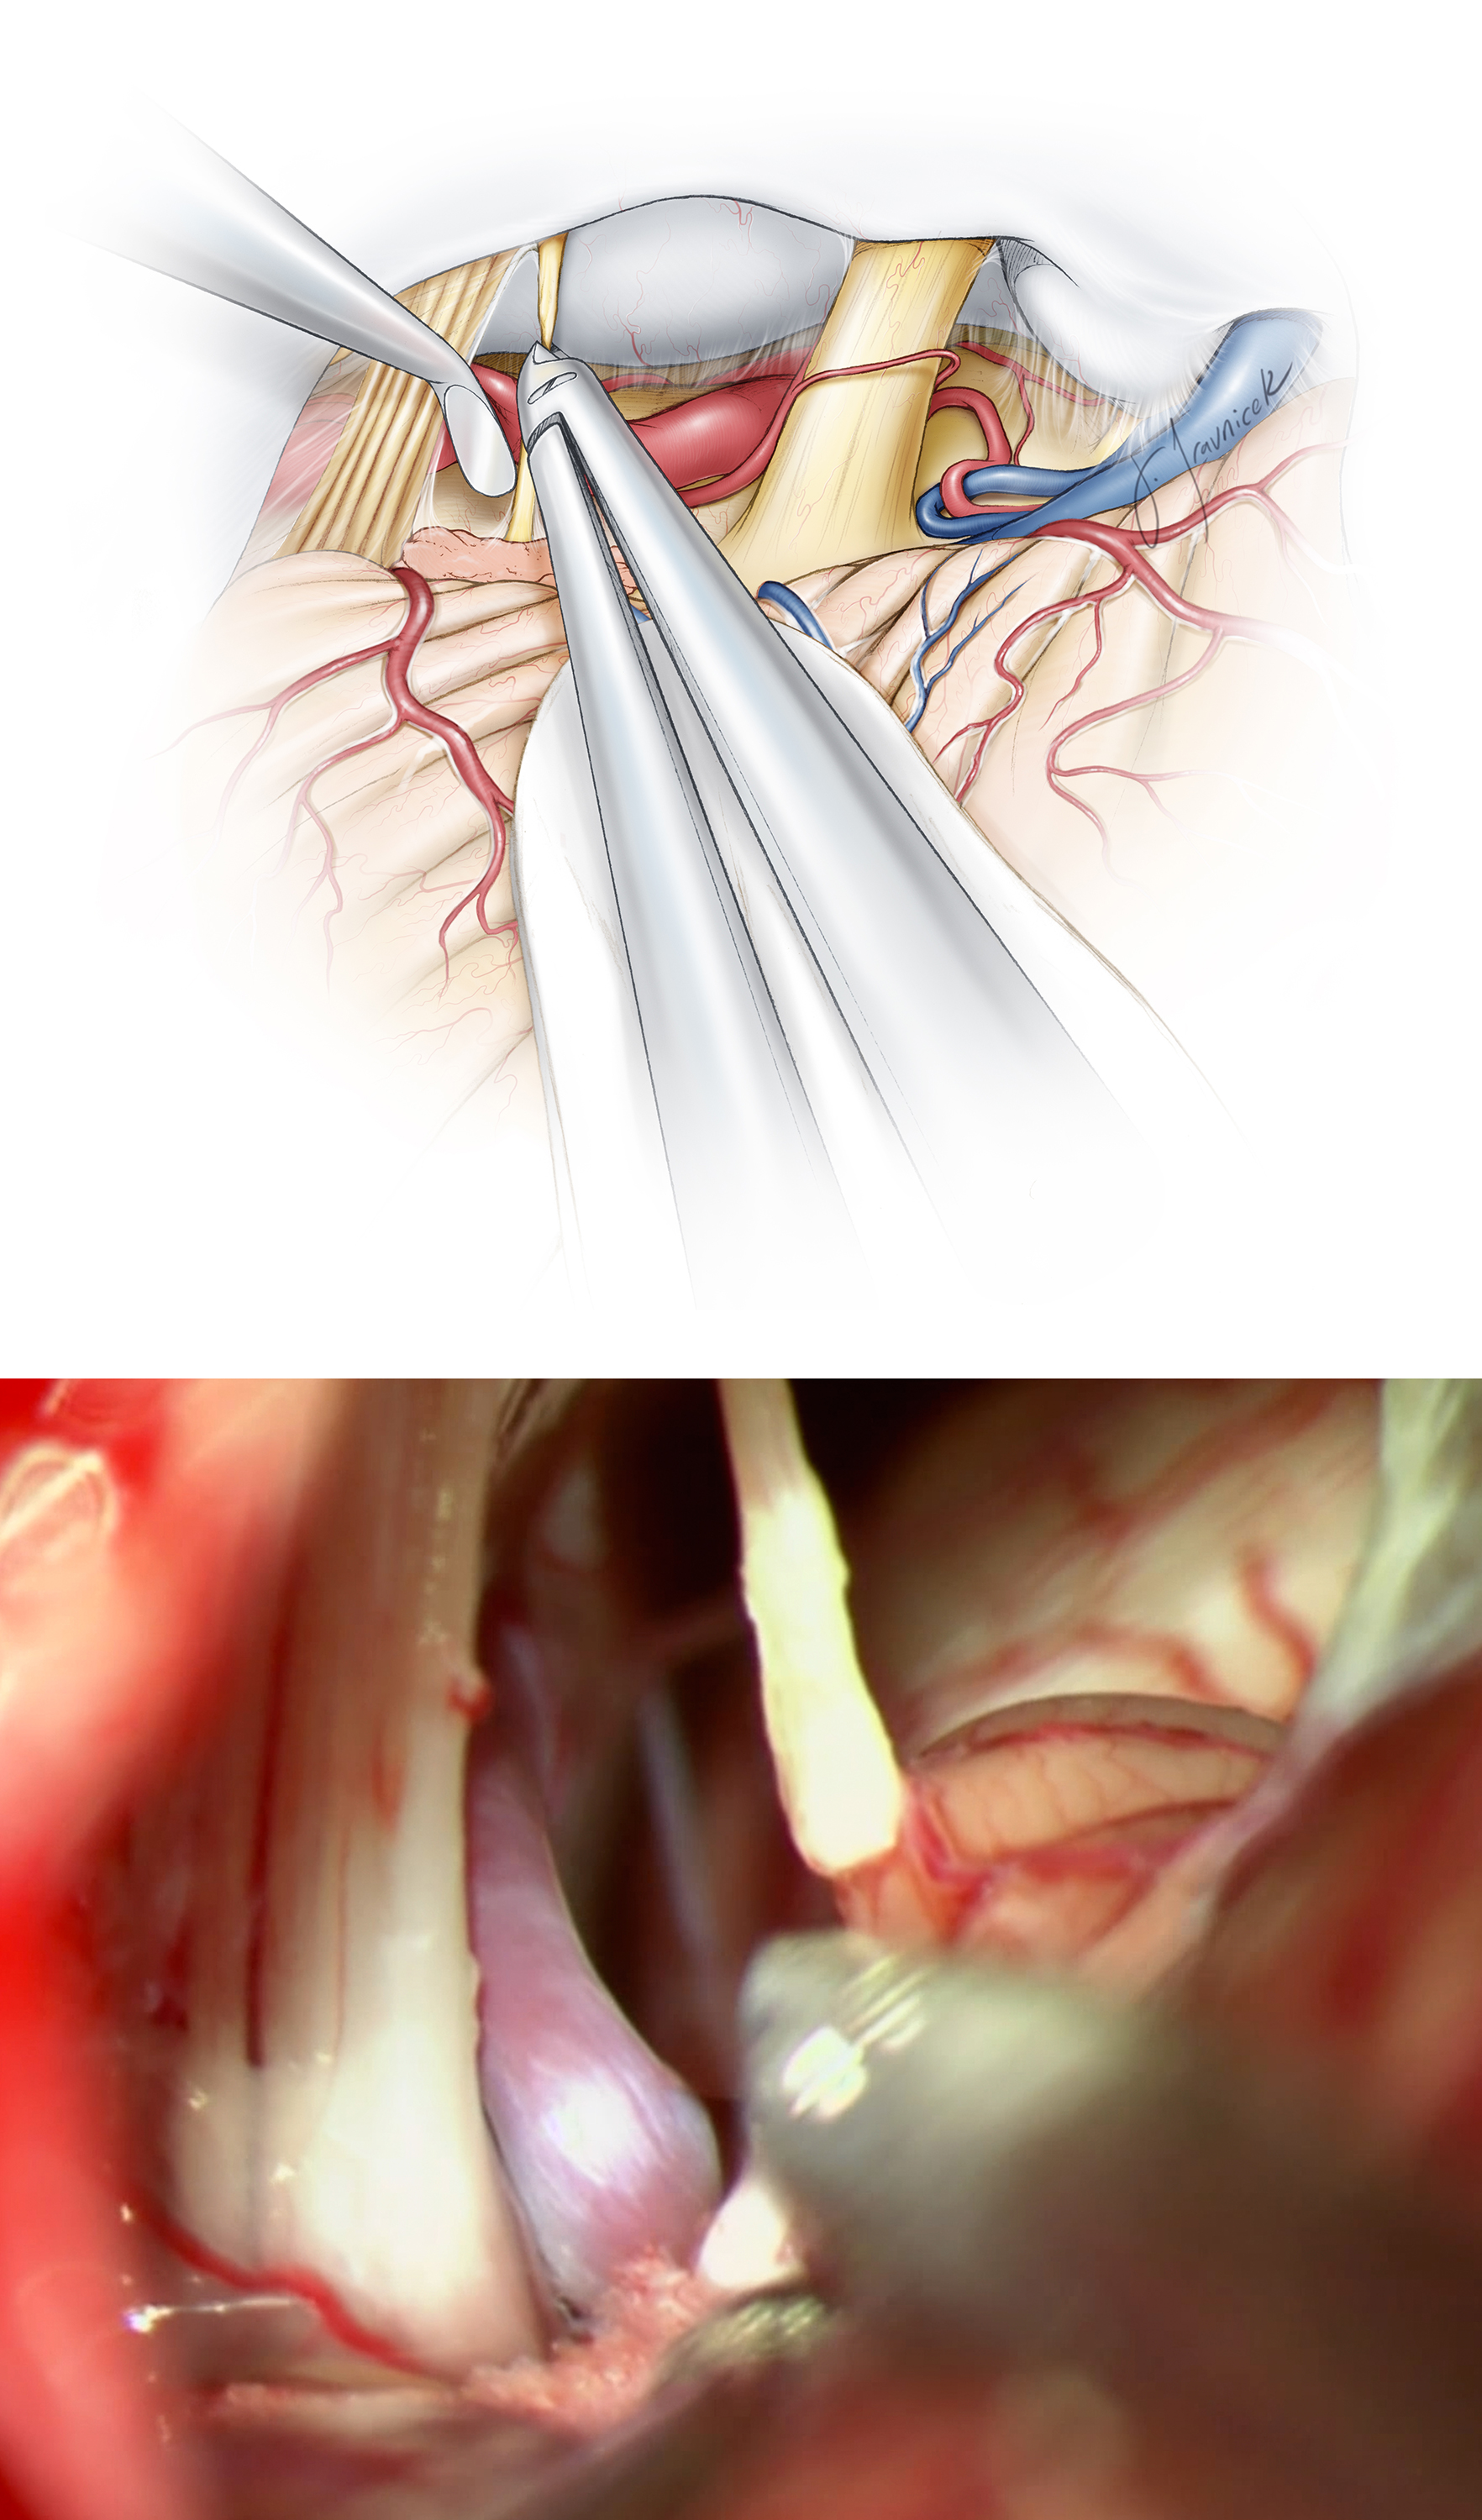 Figure 11: Once CN's VII through X can be adequately visualized, I sharply divide CN IX close to the brainstem after its coagulation. Before dividing the nerve, I give proper warning to the anesthesiologist since dramatic hypotension or tachycardia is possible, especially among older patients. In my experience, the morbidity risk of severing CN IX is minimal, and this maneuver provides valuable and much needed space to adequately decompress CN X.